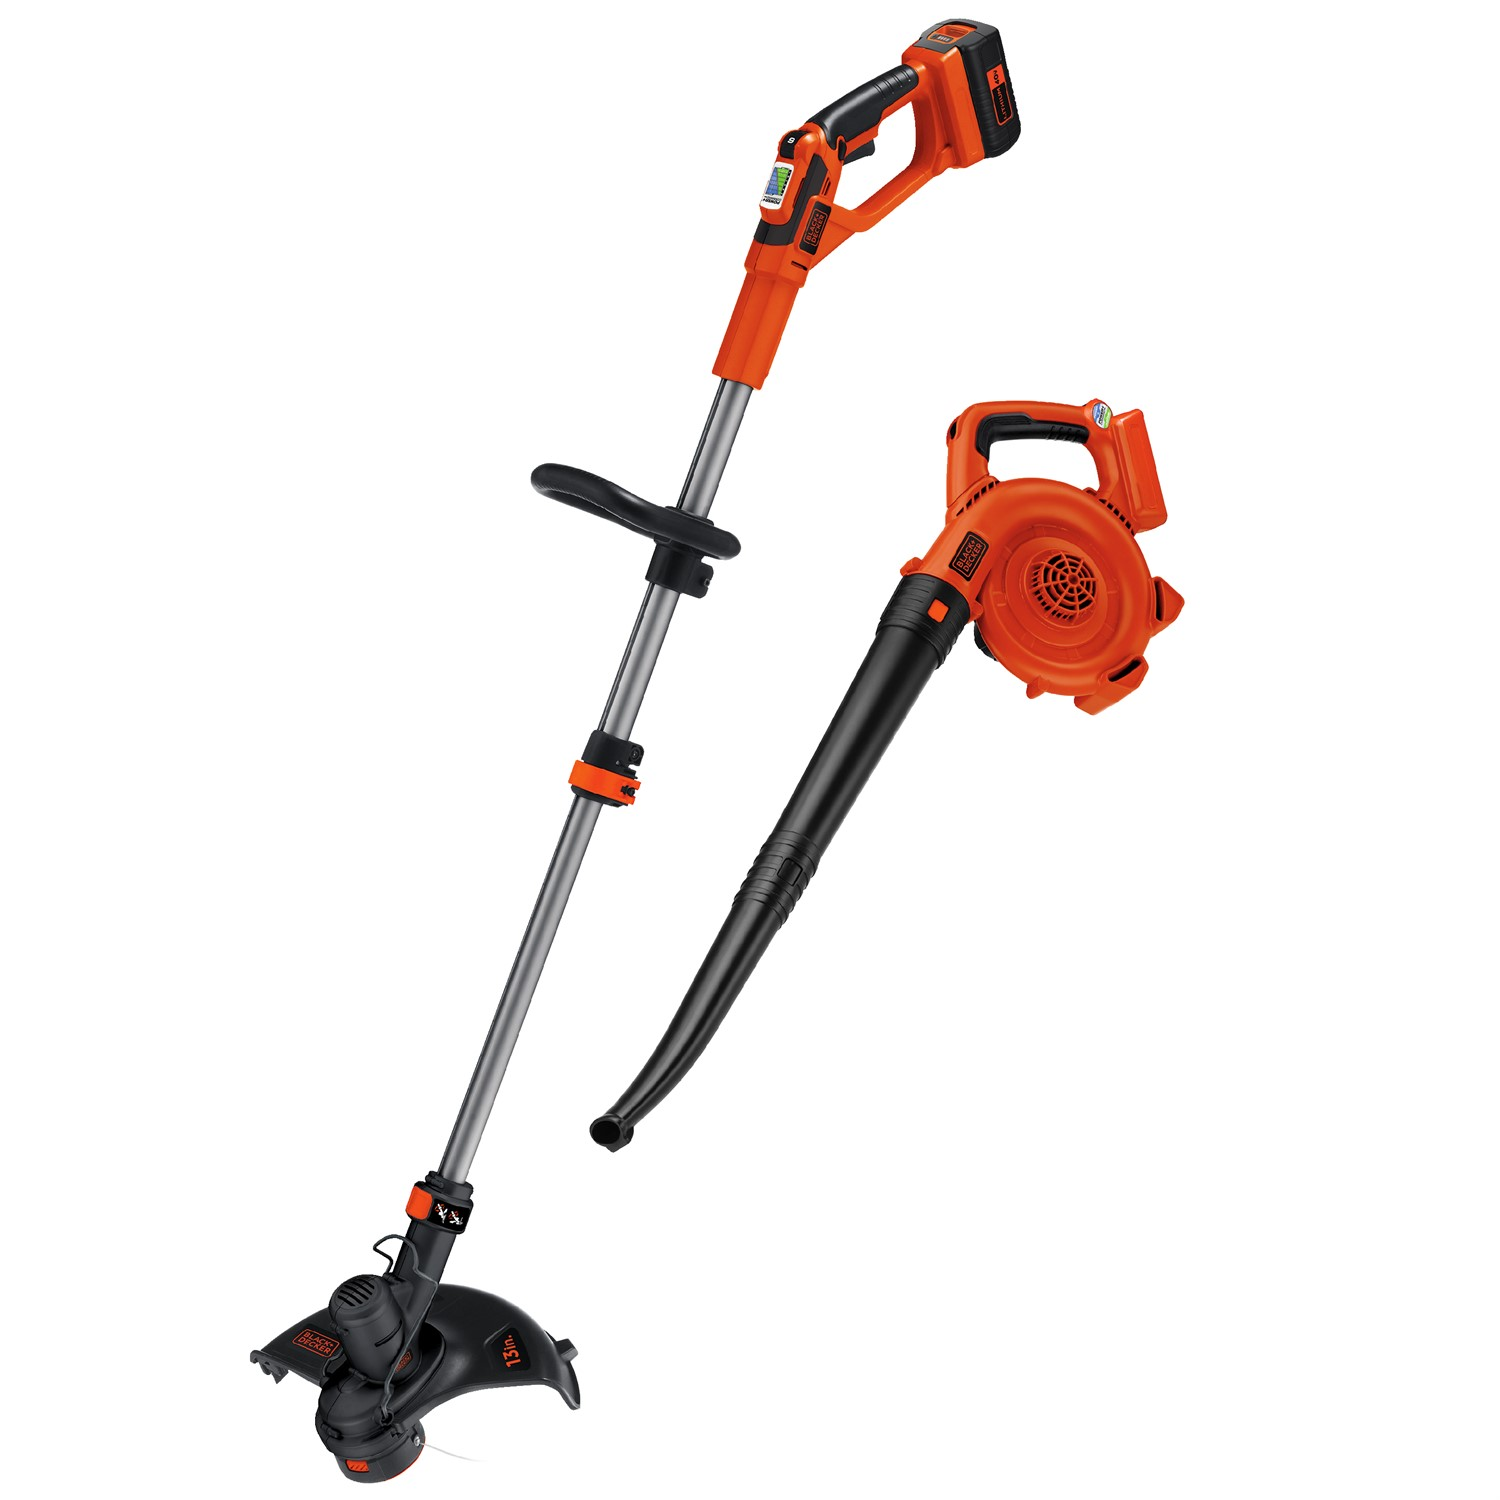 Black & Decker LCC140 40V MAX* Lithium-Ion Cordless String Trimmer & Sweeper Combo Kit by Stanley Black & Decker